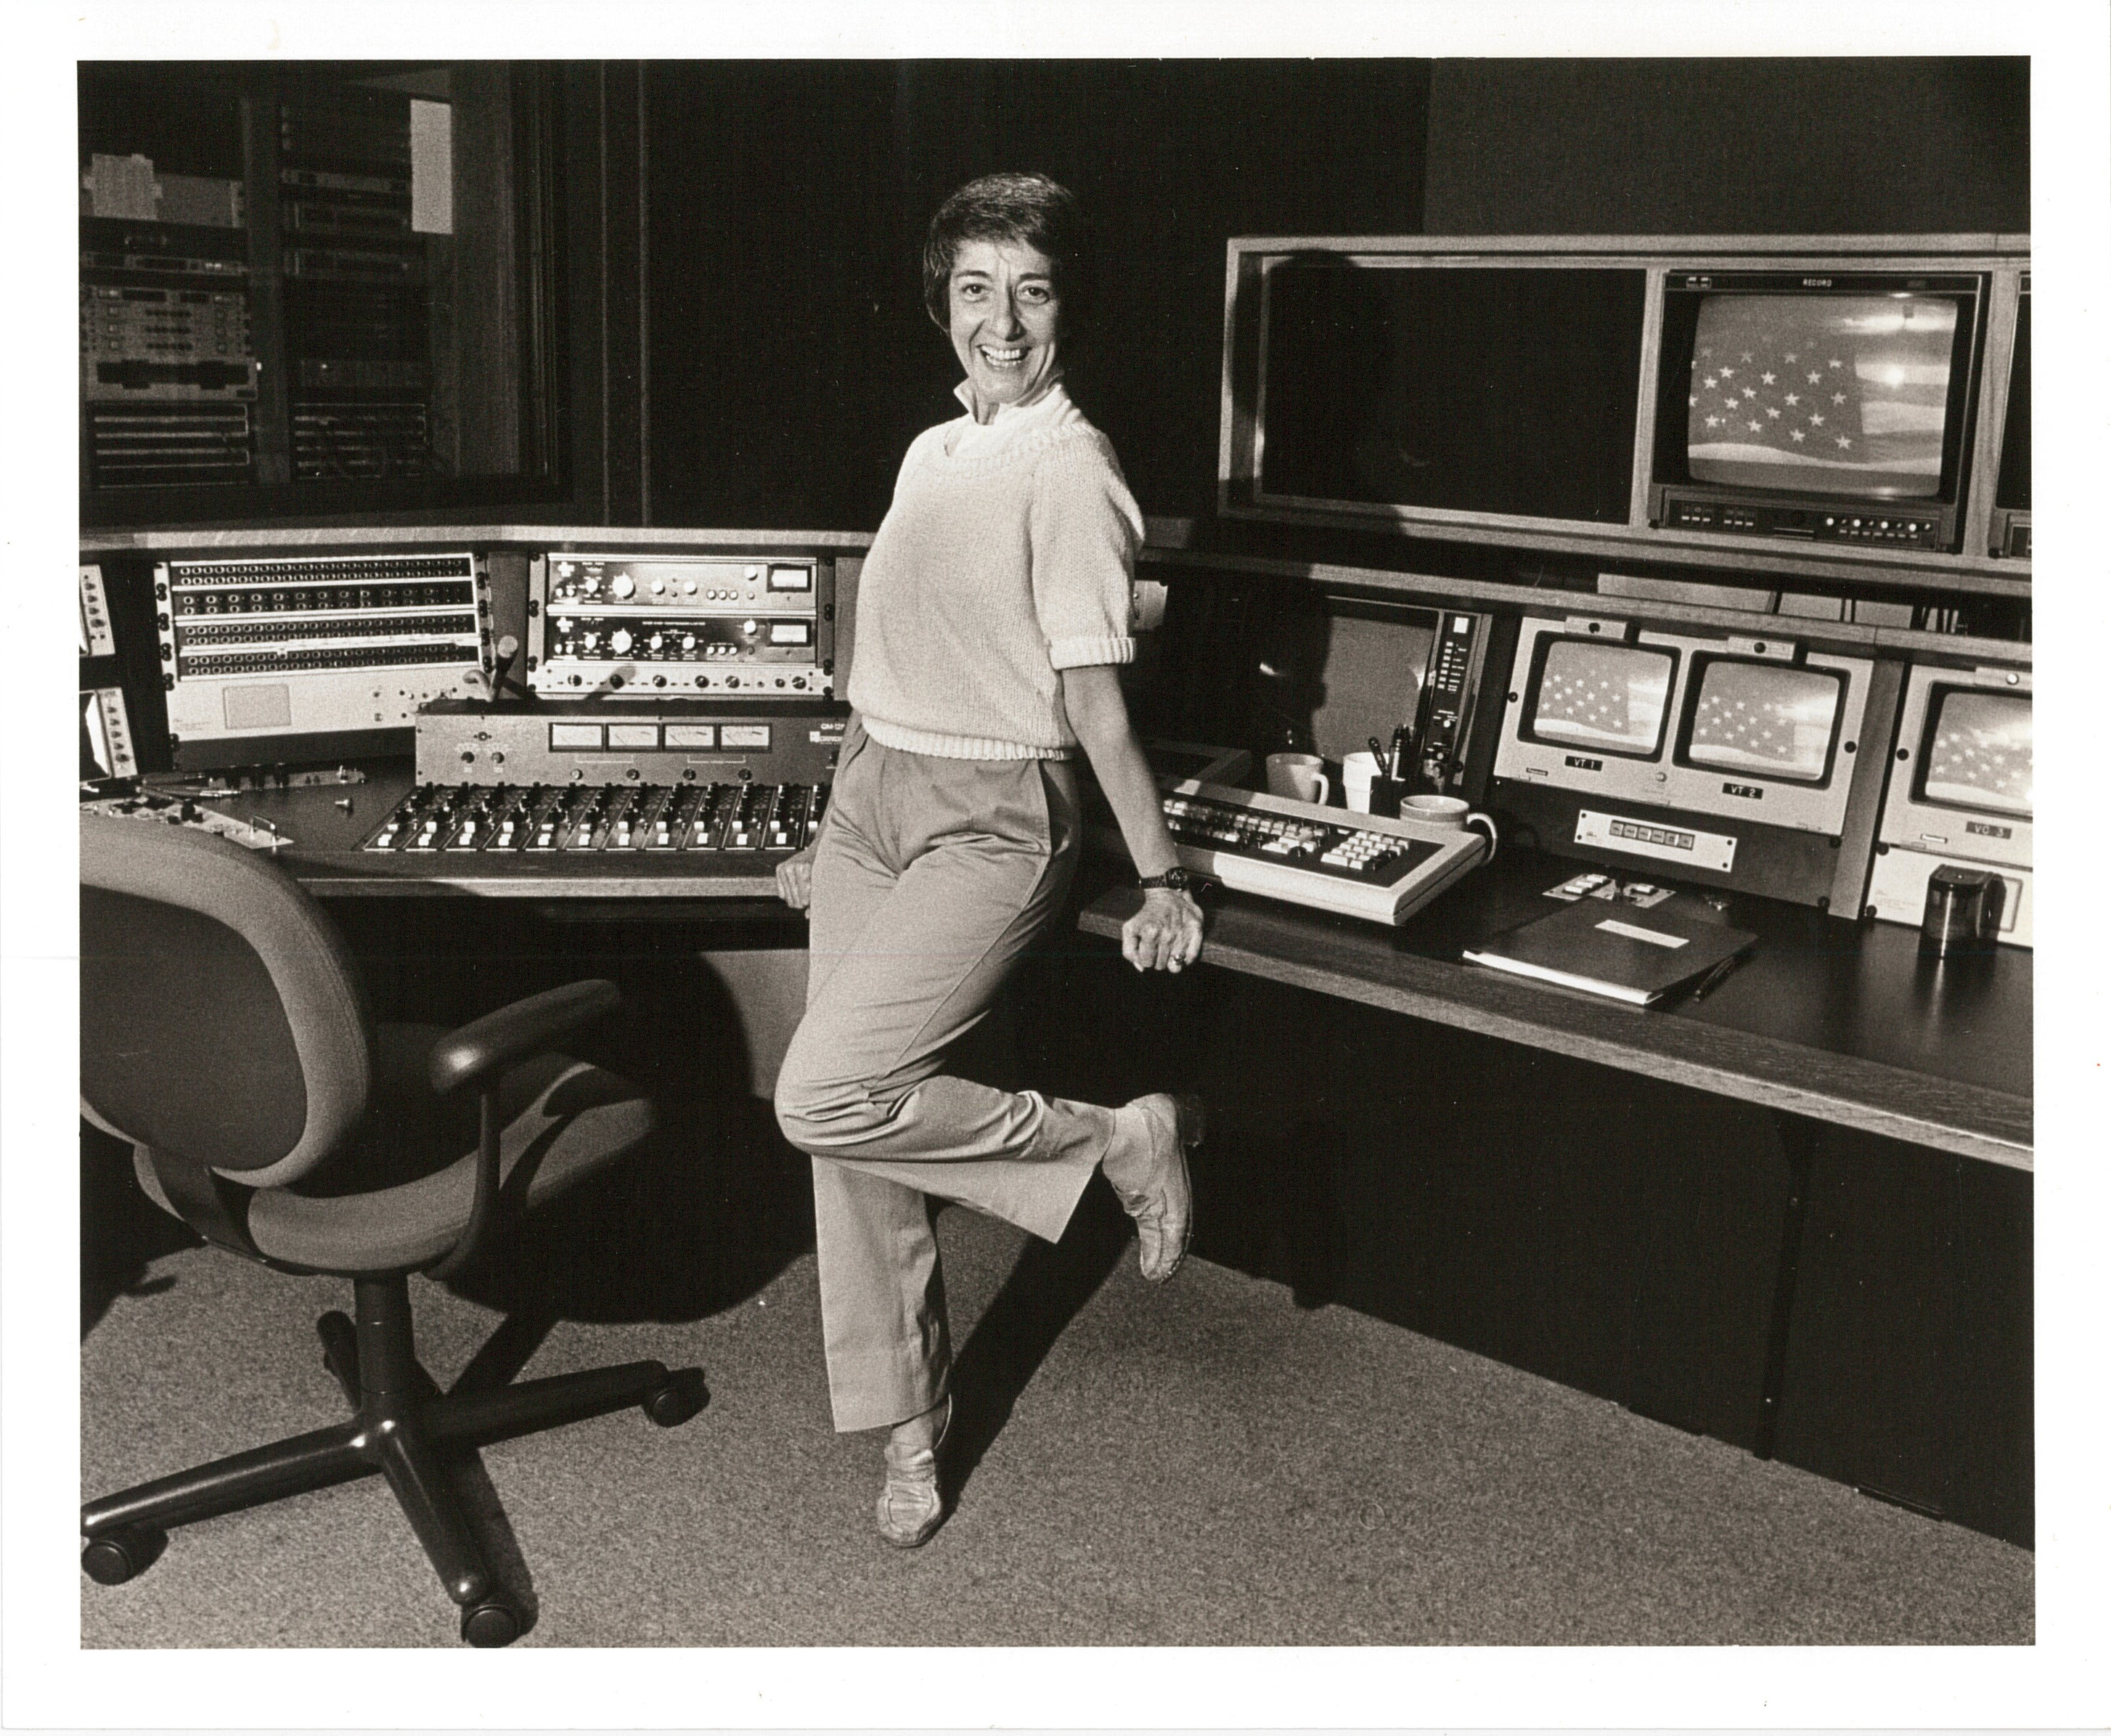 Photograph of Midge Costanza in a television studio